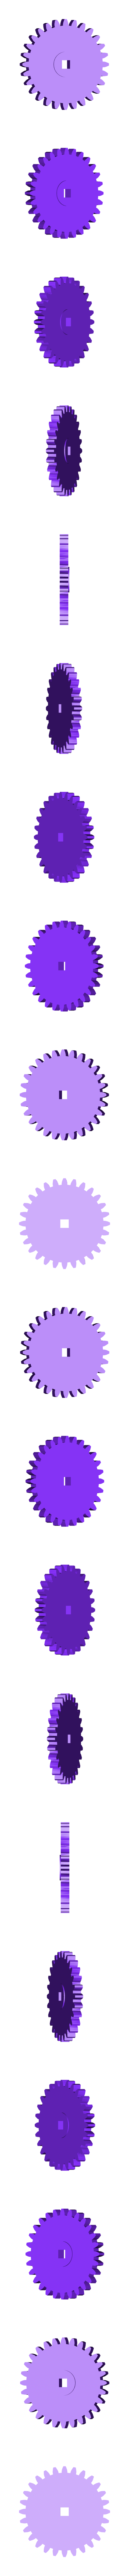 Gear_Idler.stl Download free STL file Perseverance • 3D printer template, gzumwalt